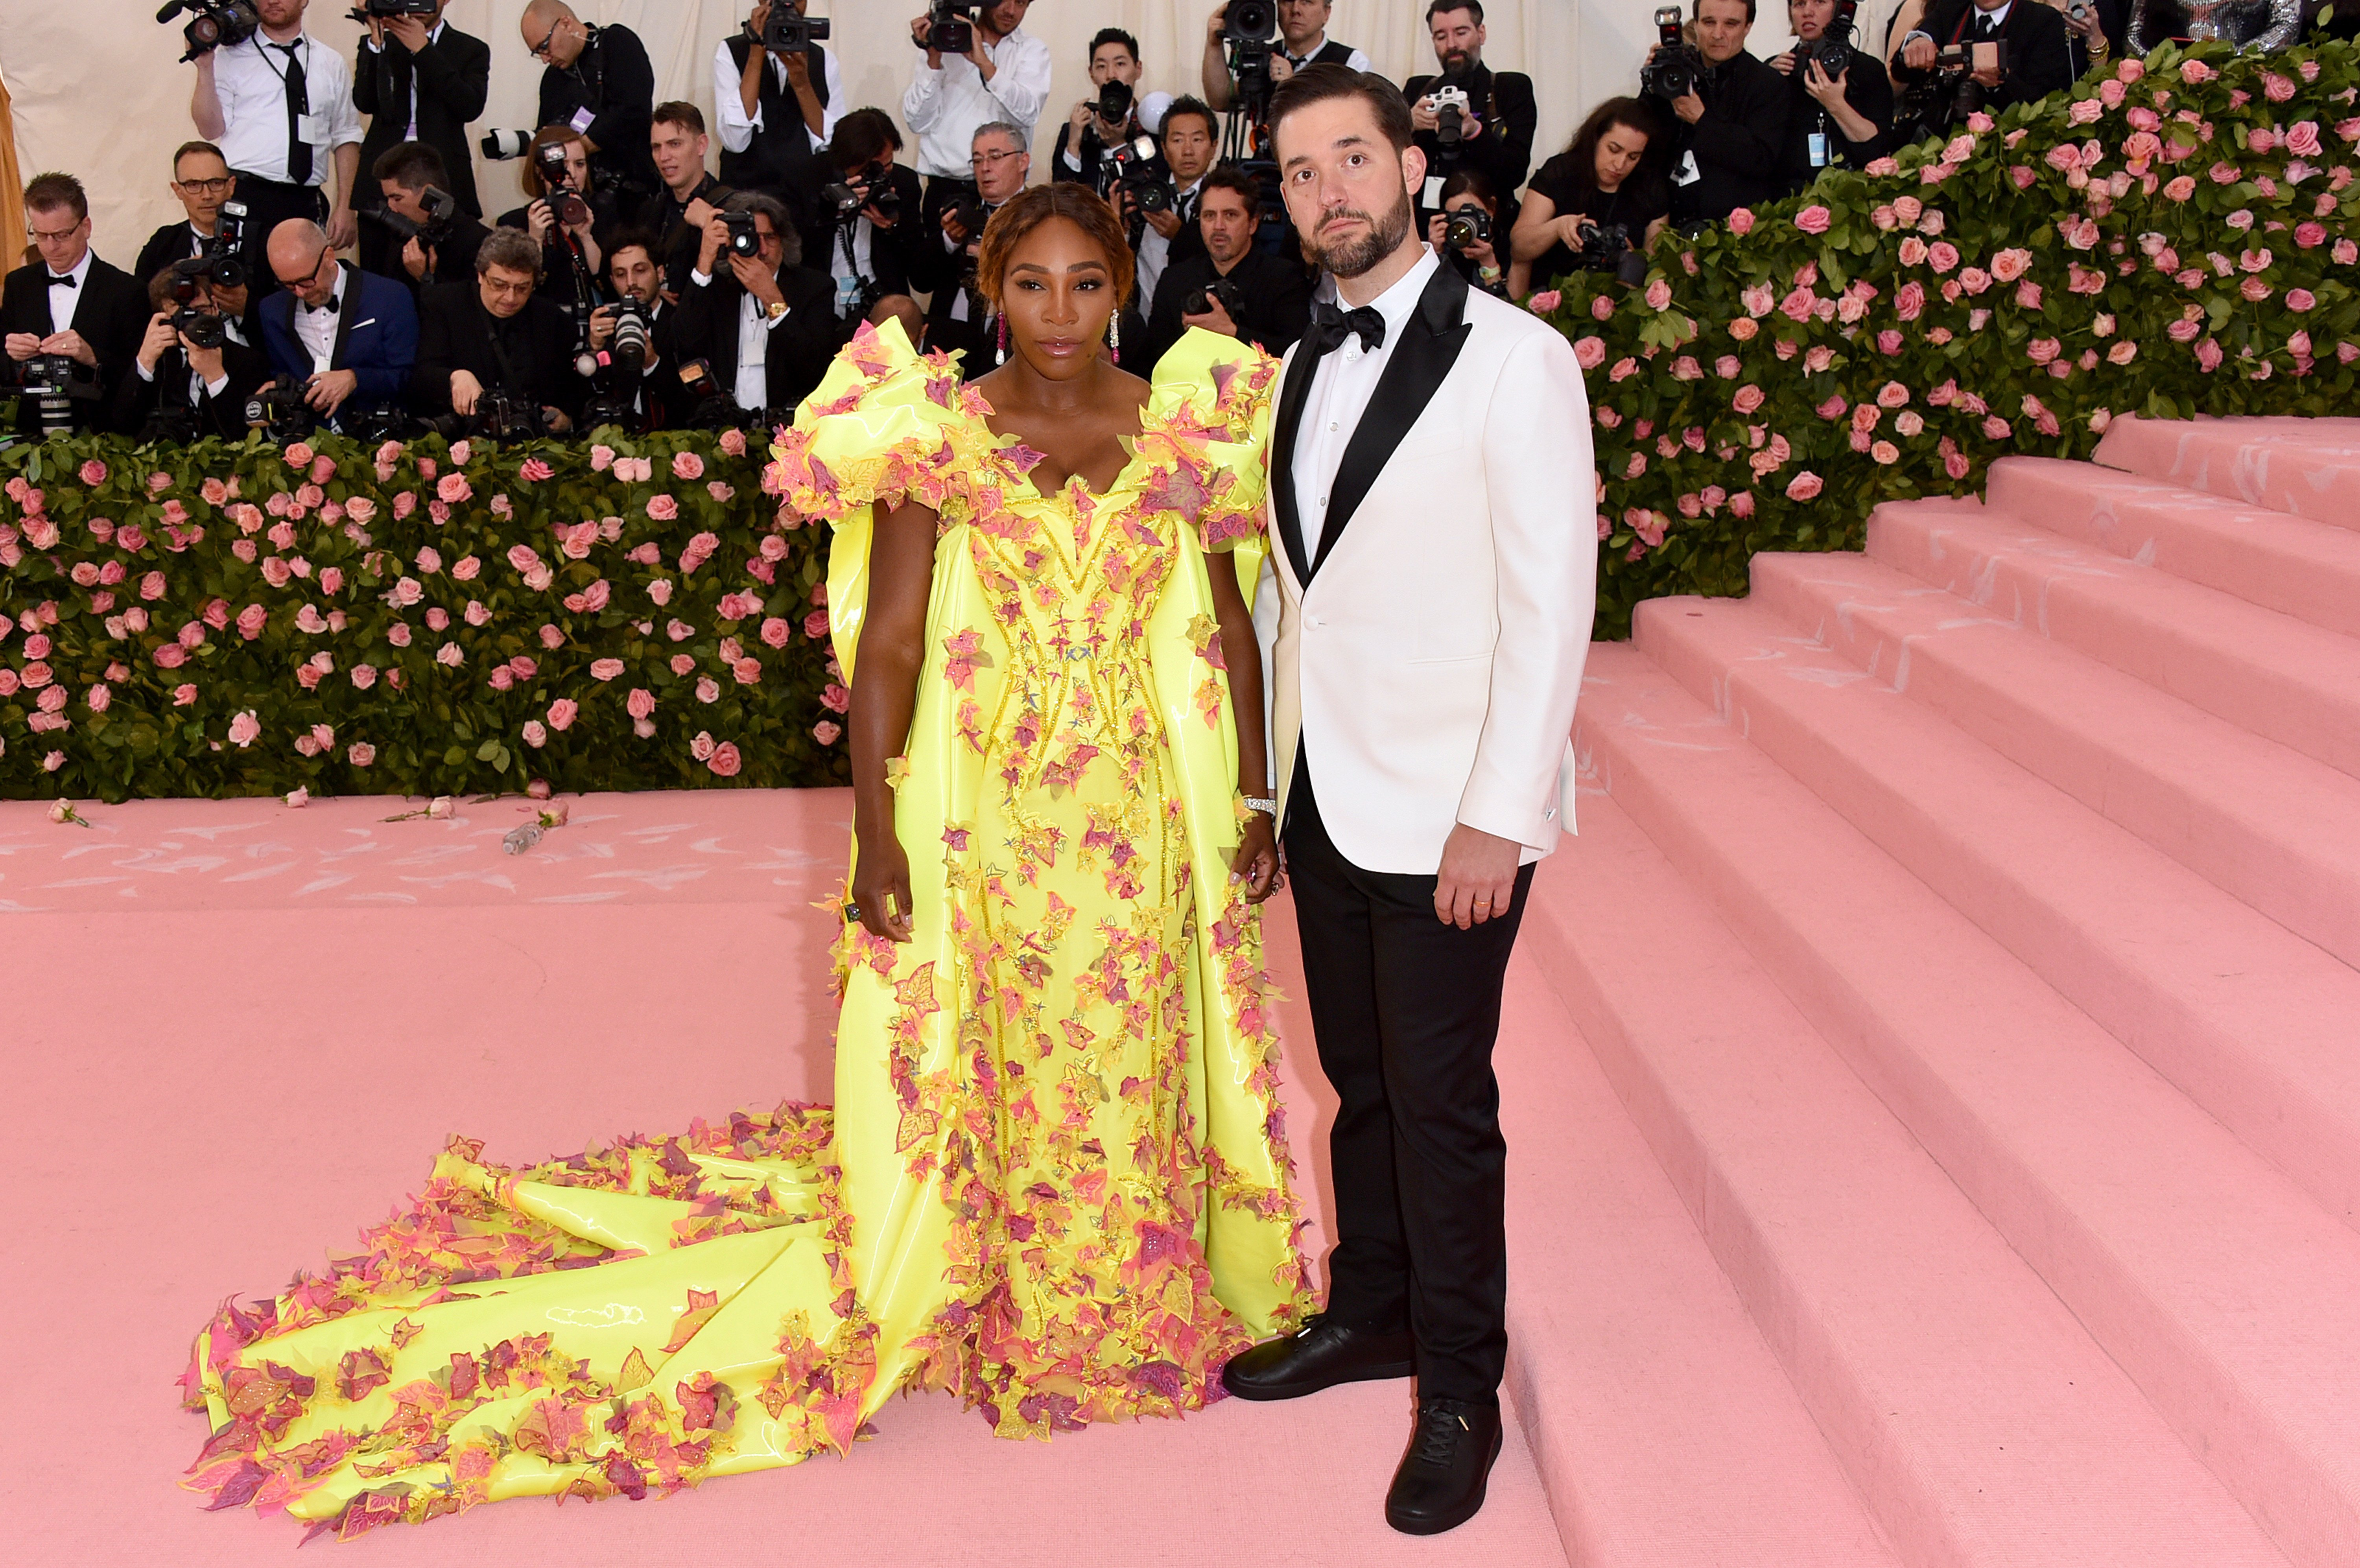 Serena Williams & Alexis Ohanian at The Met Gala in New York City on May 06, 2019 | Photo: Getty Images